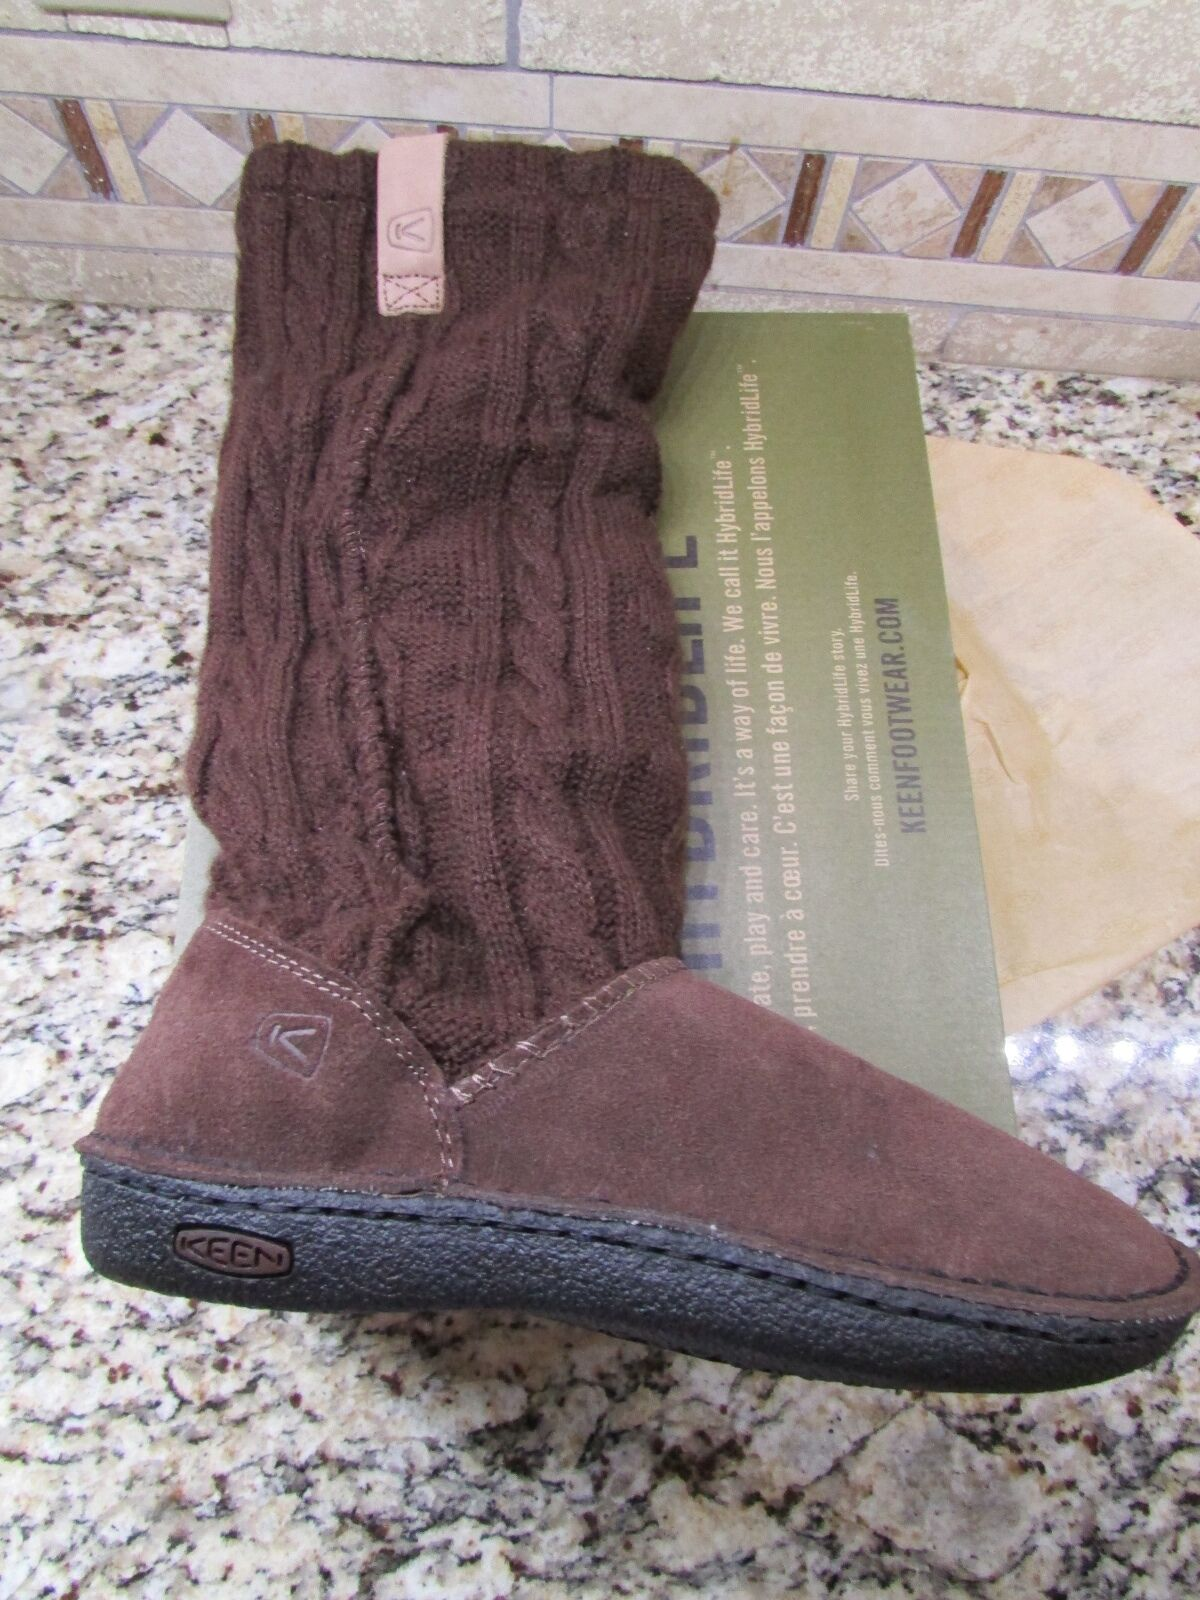 NEW KEEN AUBURN SUEDE & KNIT TALL  BOOTS WOMENS 5.5 BROWN